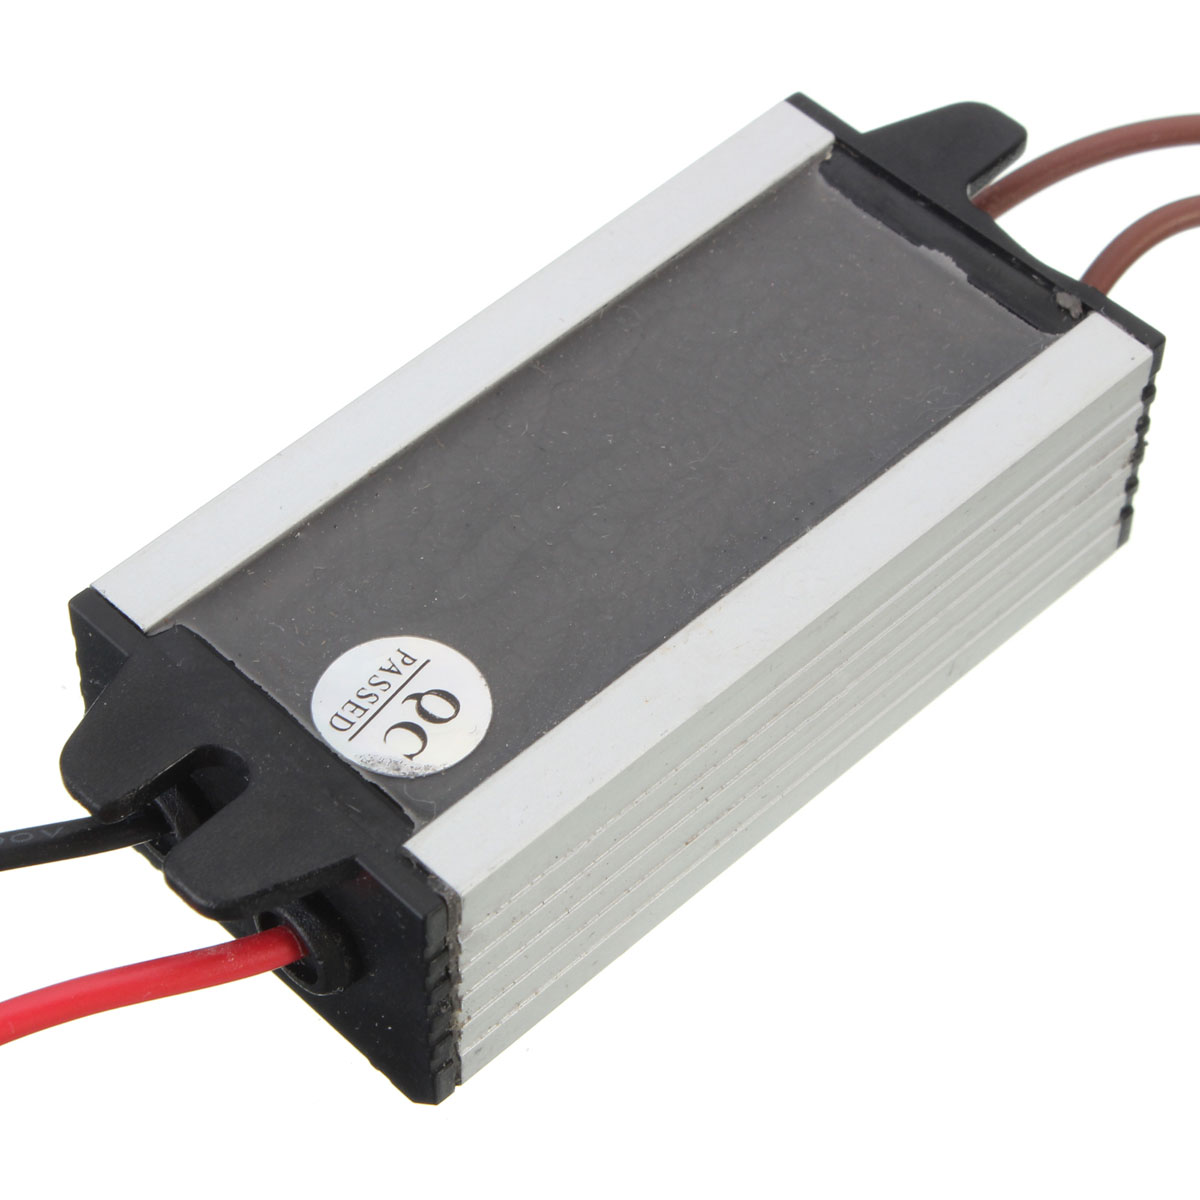 12v 10w ac dc transformer tube light waterproof led driver 900ma power supply ebay. Black Bedroom Furniture Sets. Home Design Ideas